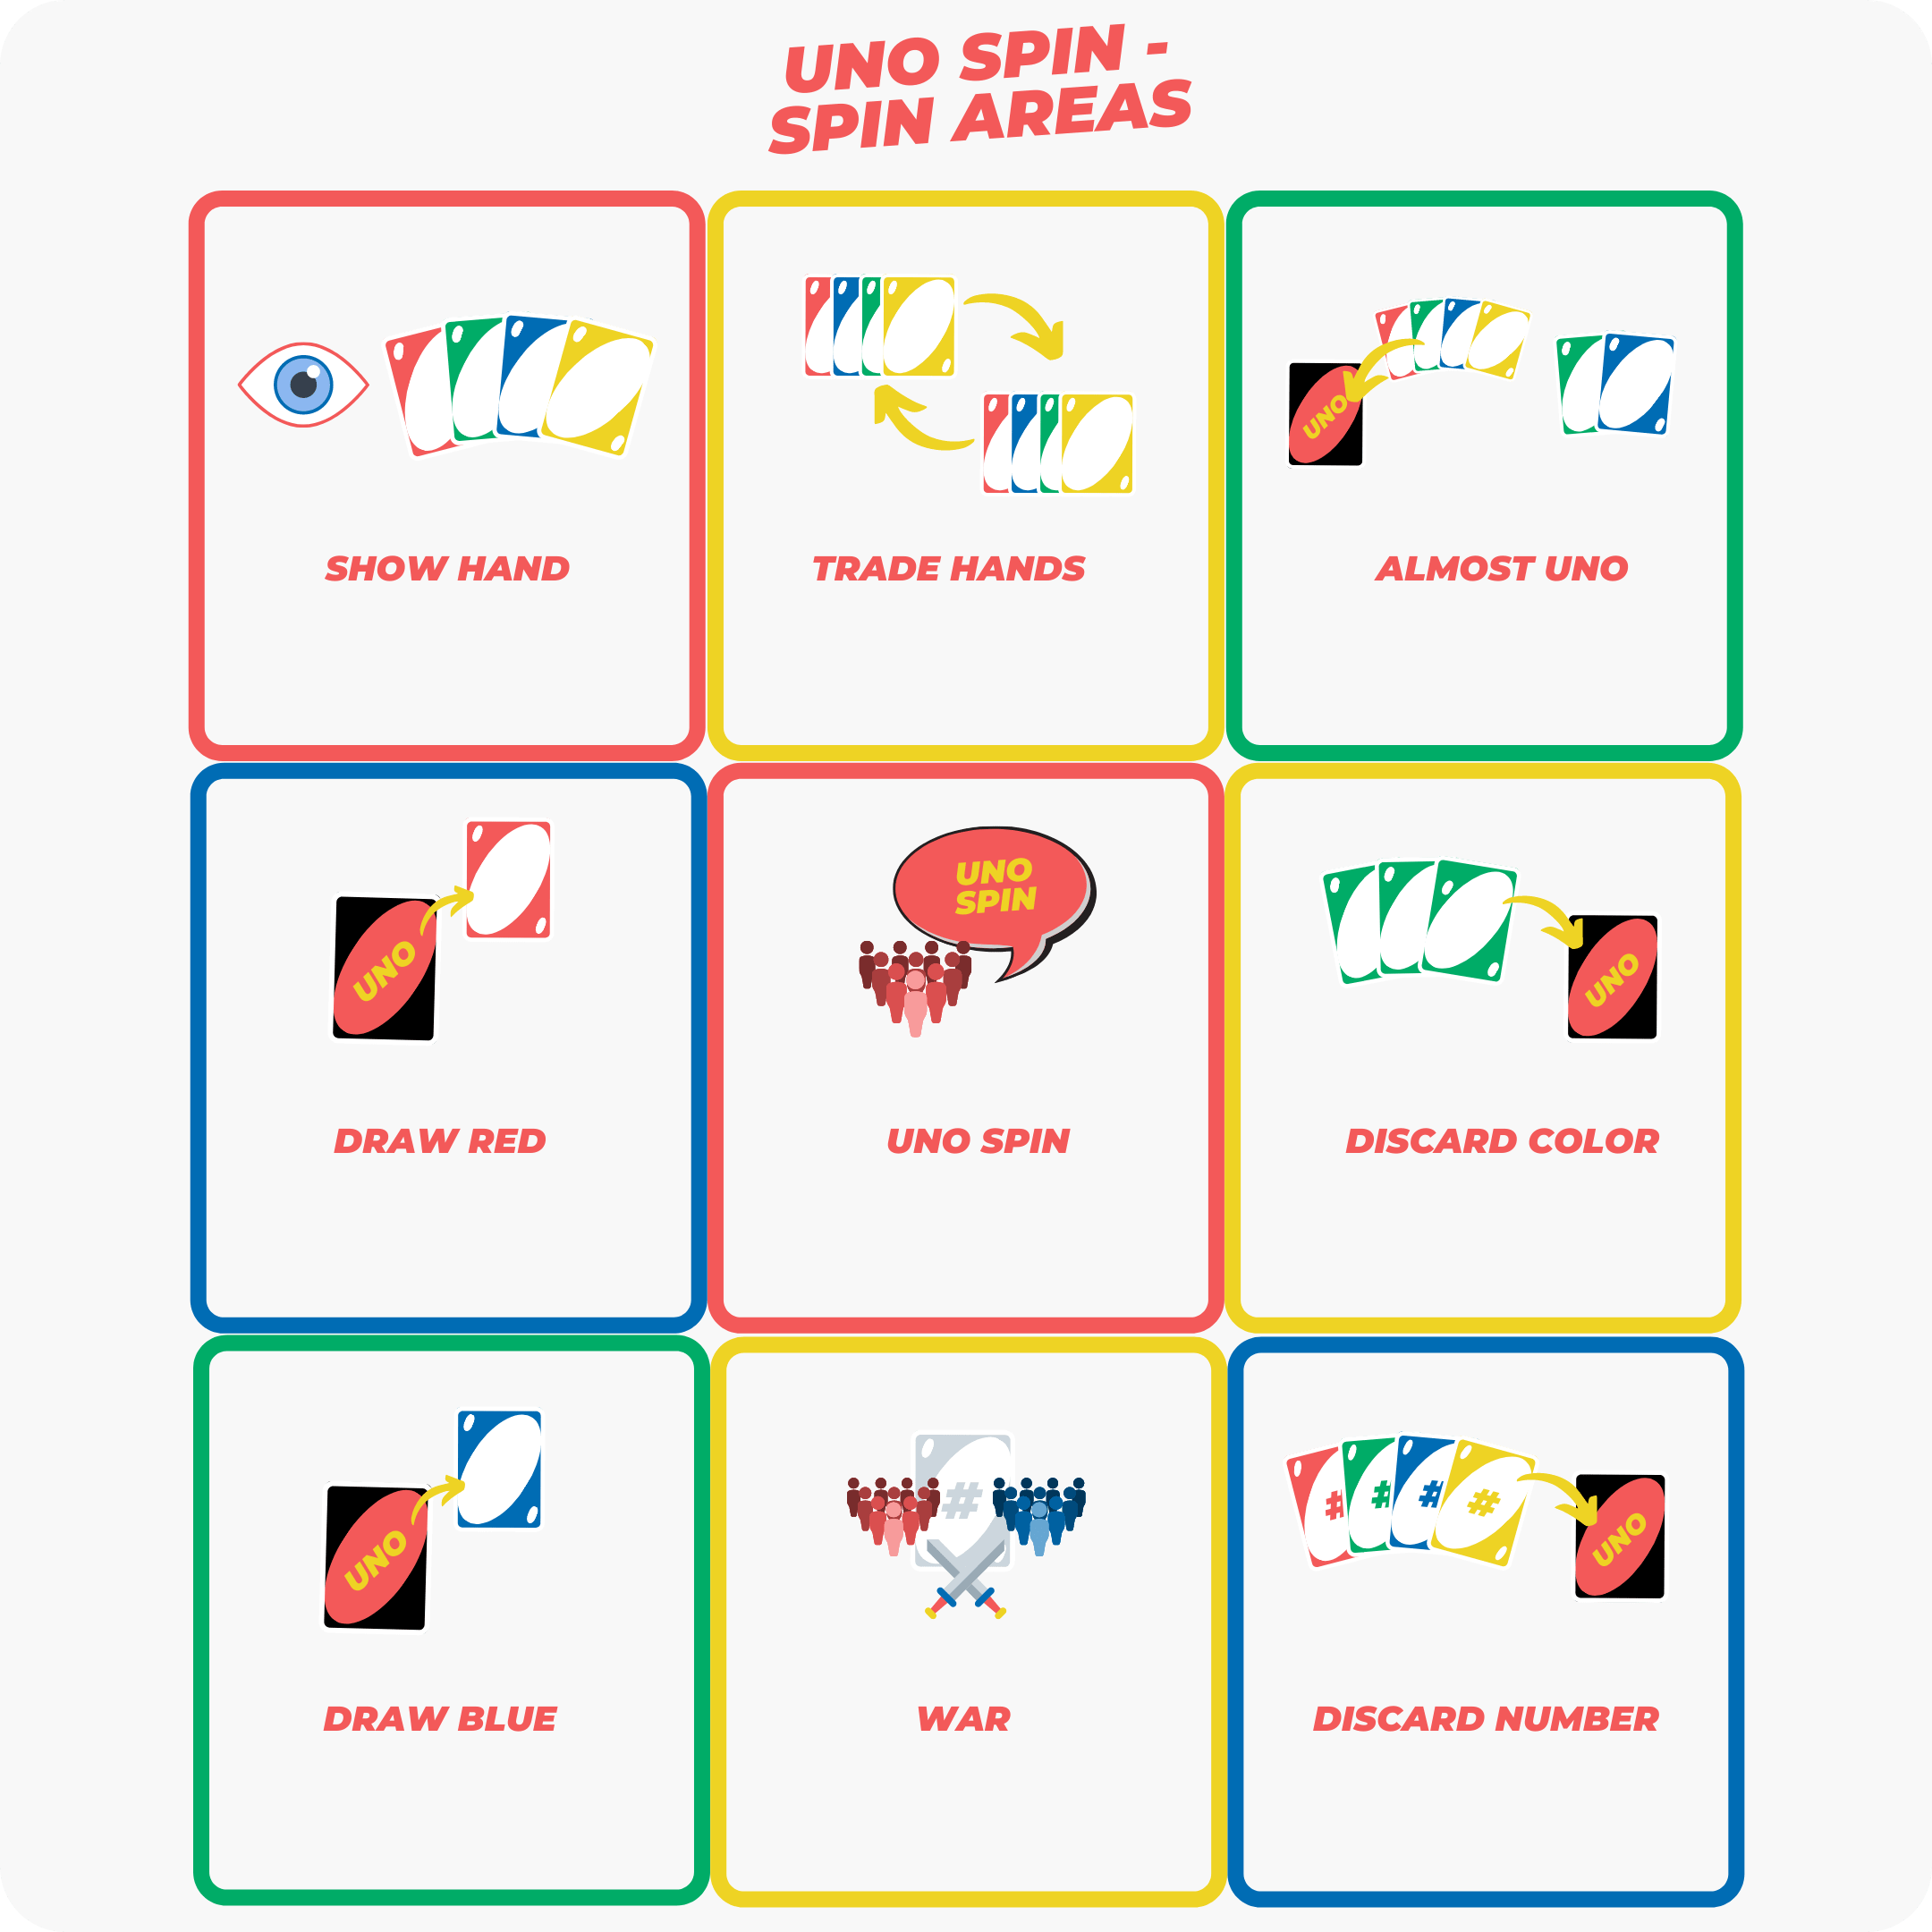 Uno Spin - Spin Areas